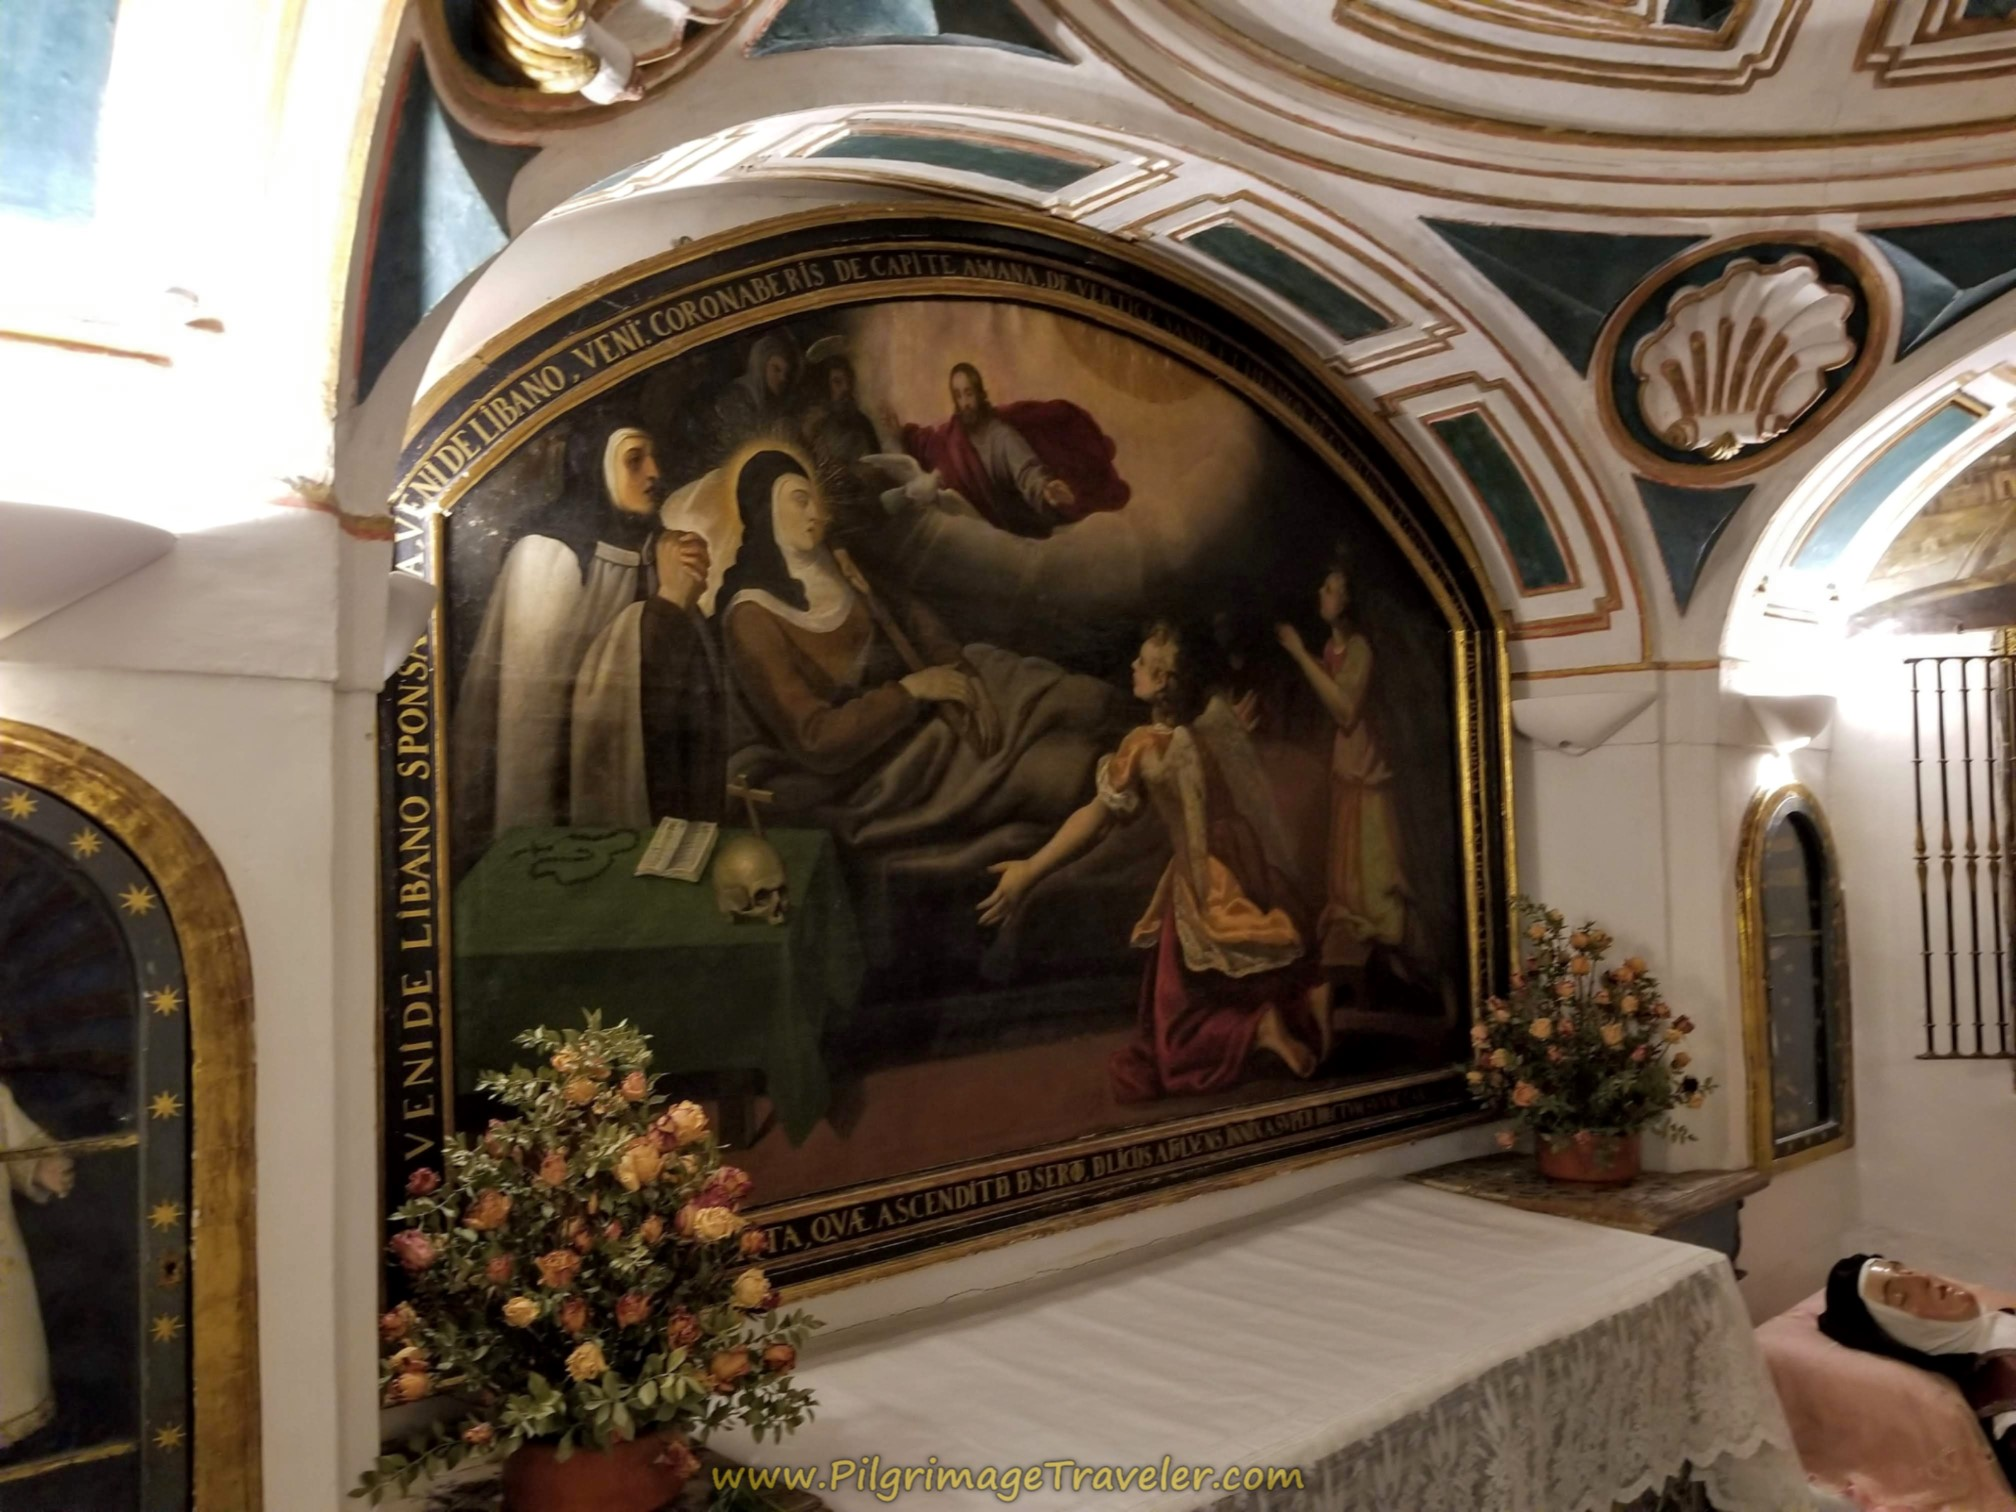 Painting of St. Teresa's Death